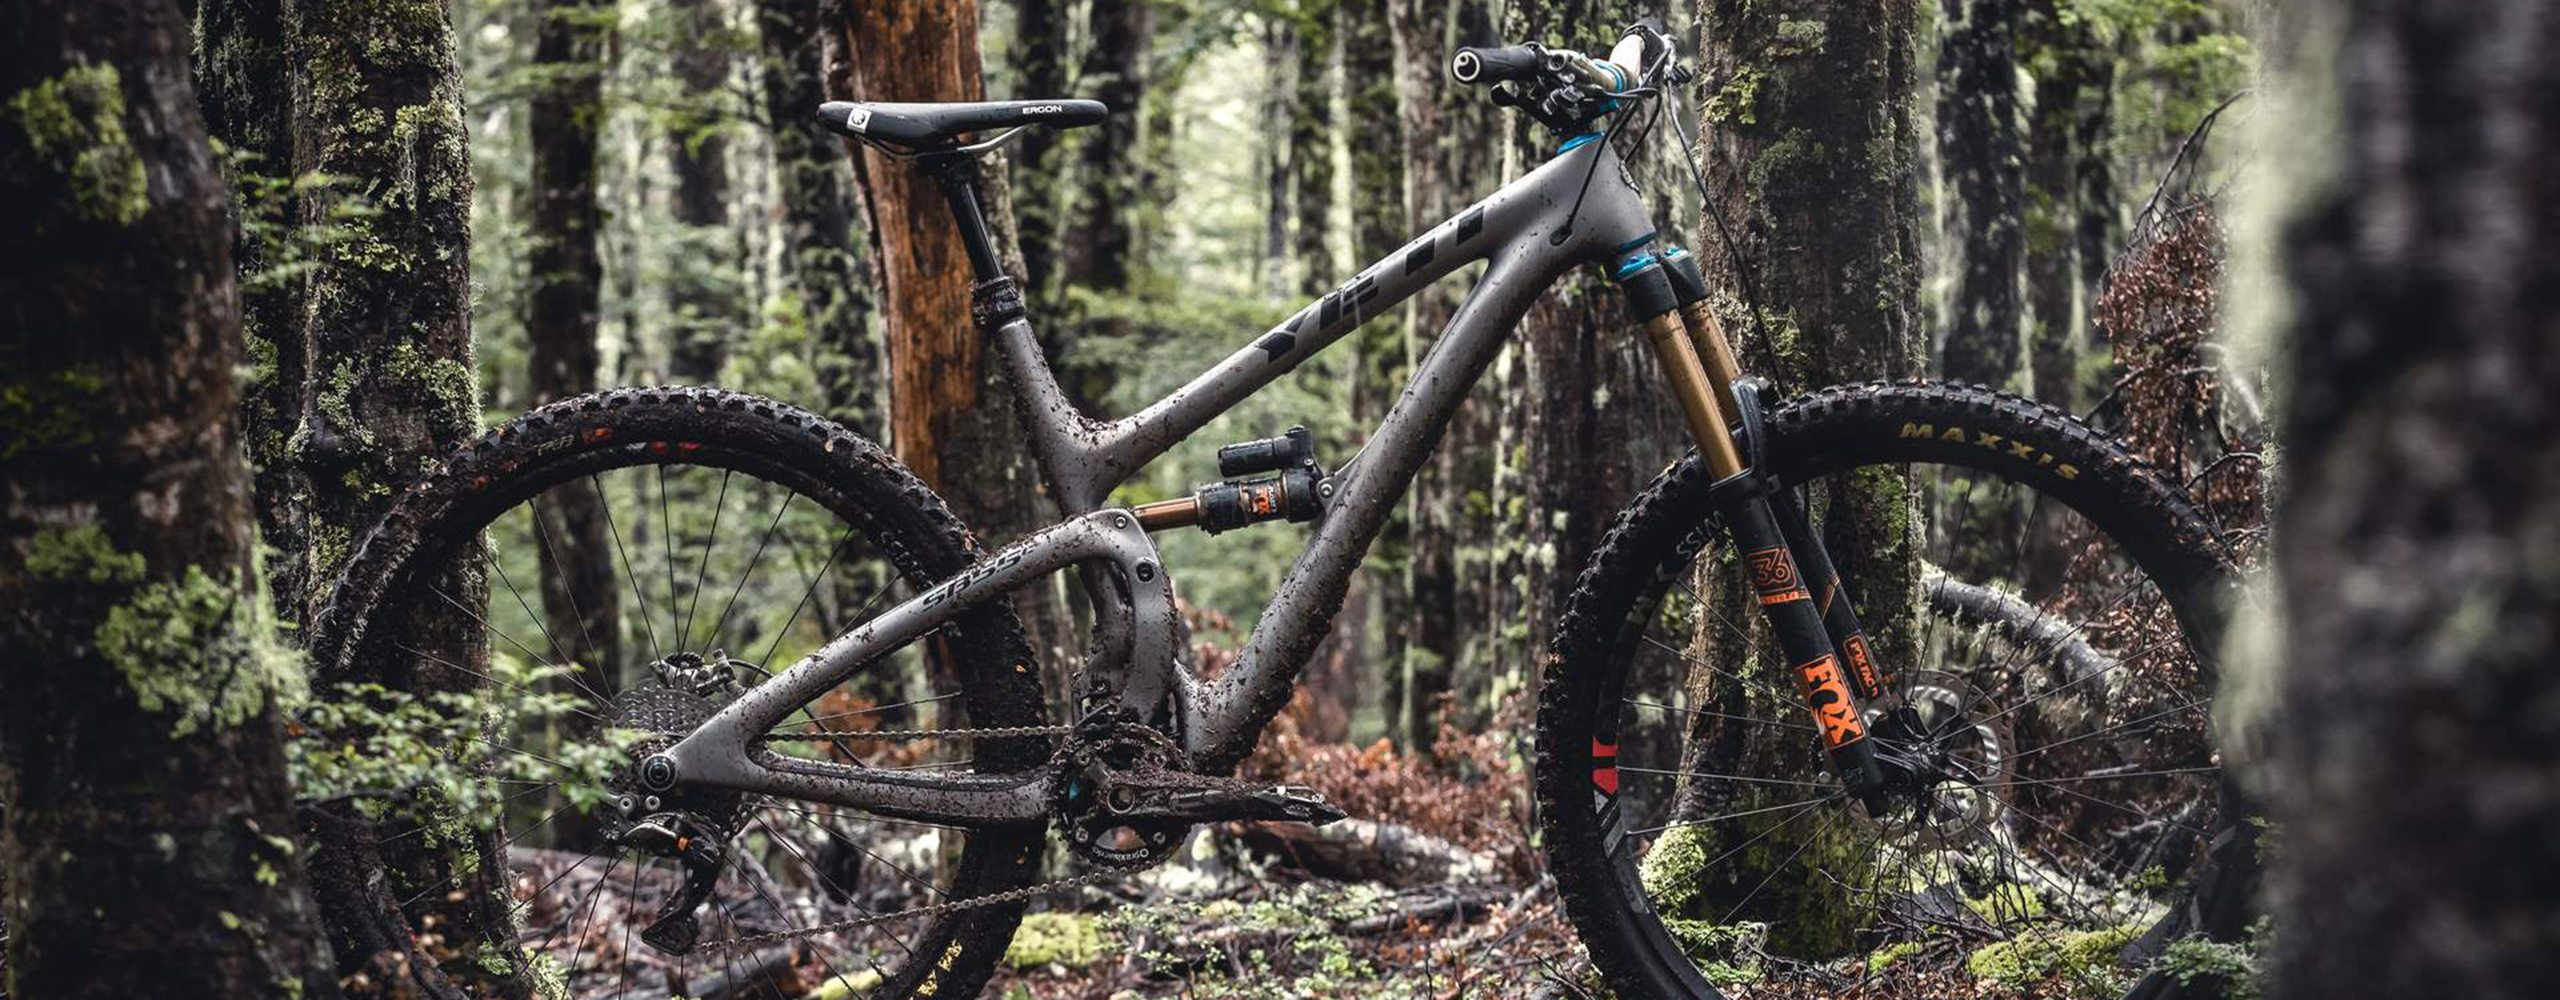 Yeti Bike - Expert Cycles